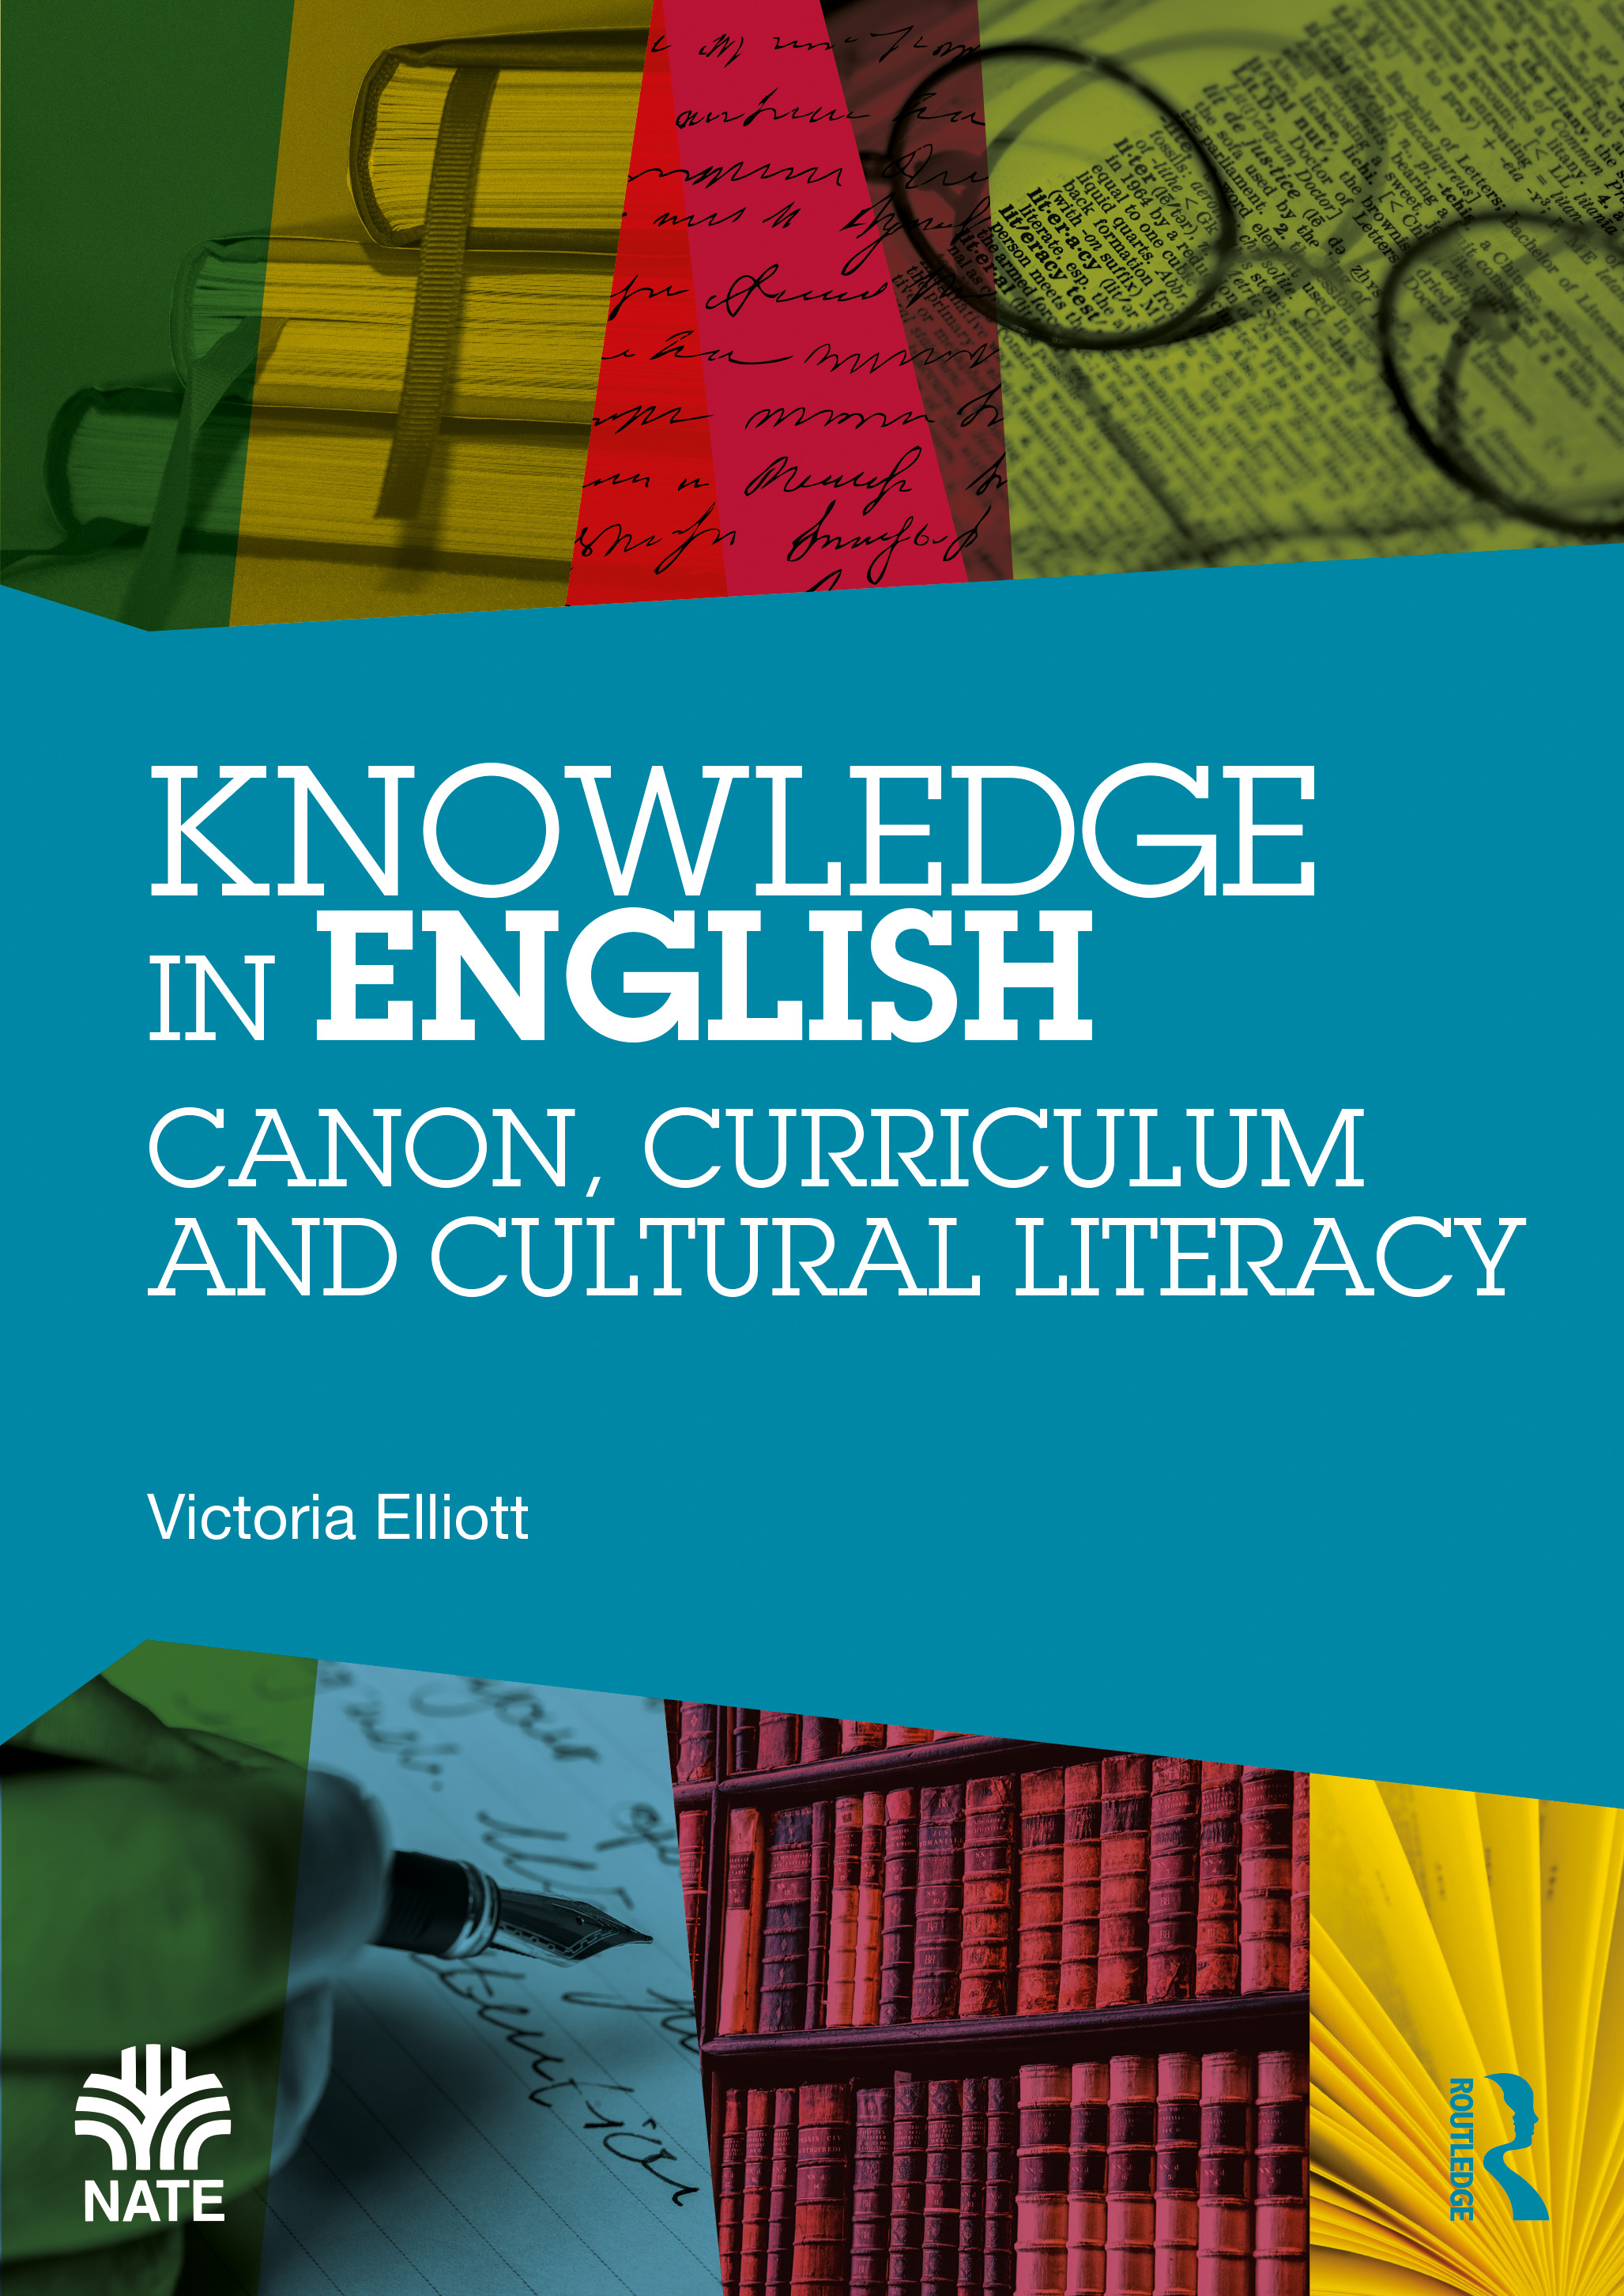 The construction of knowledge in English Literature